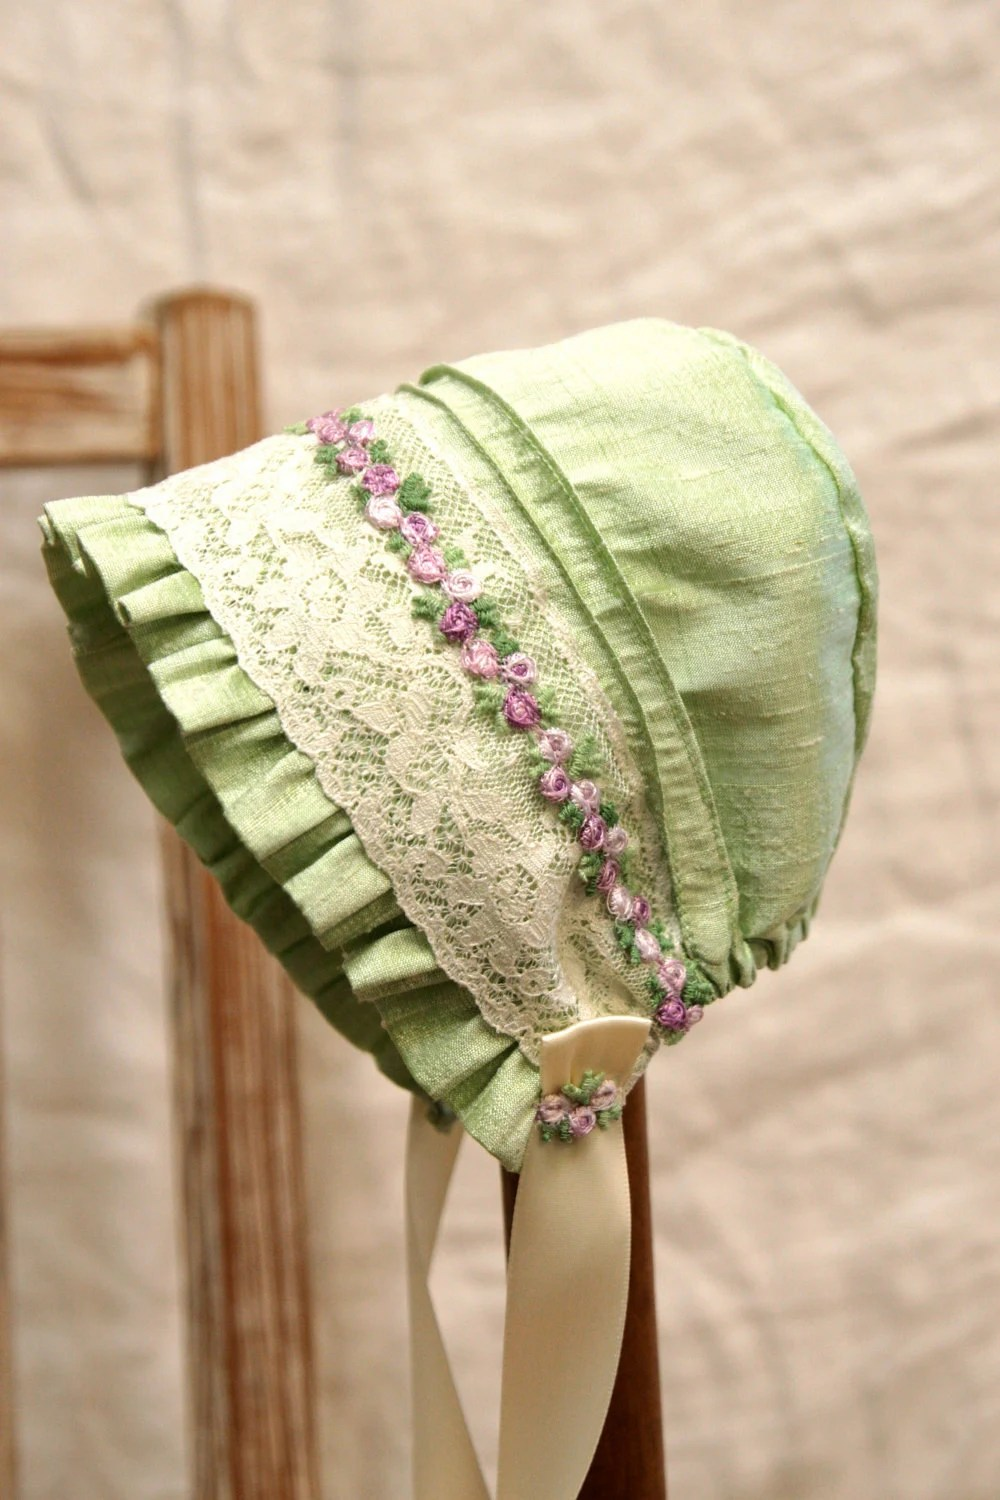 Baby Cradle Cloth Silk And Lace Baby Bonnet Infant Photo Prop Vintage